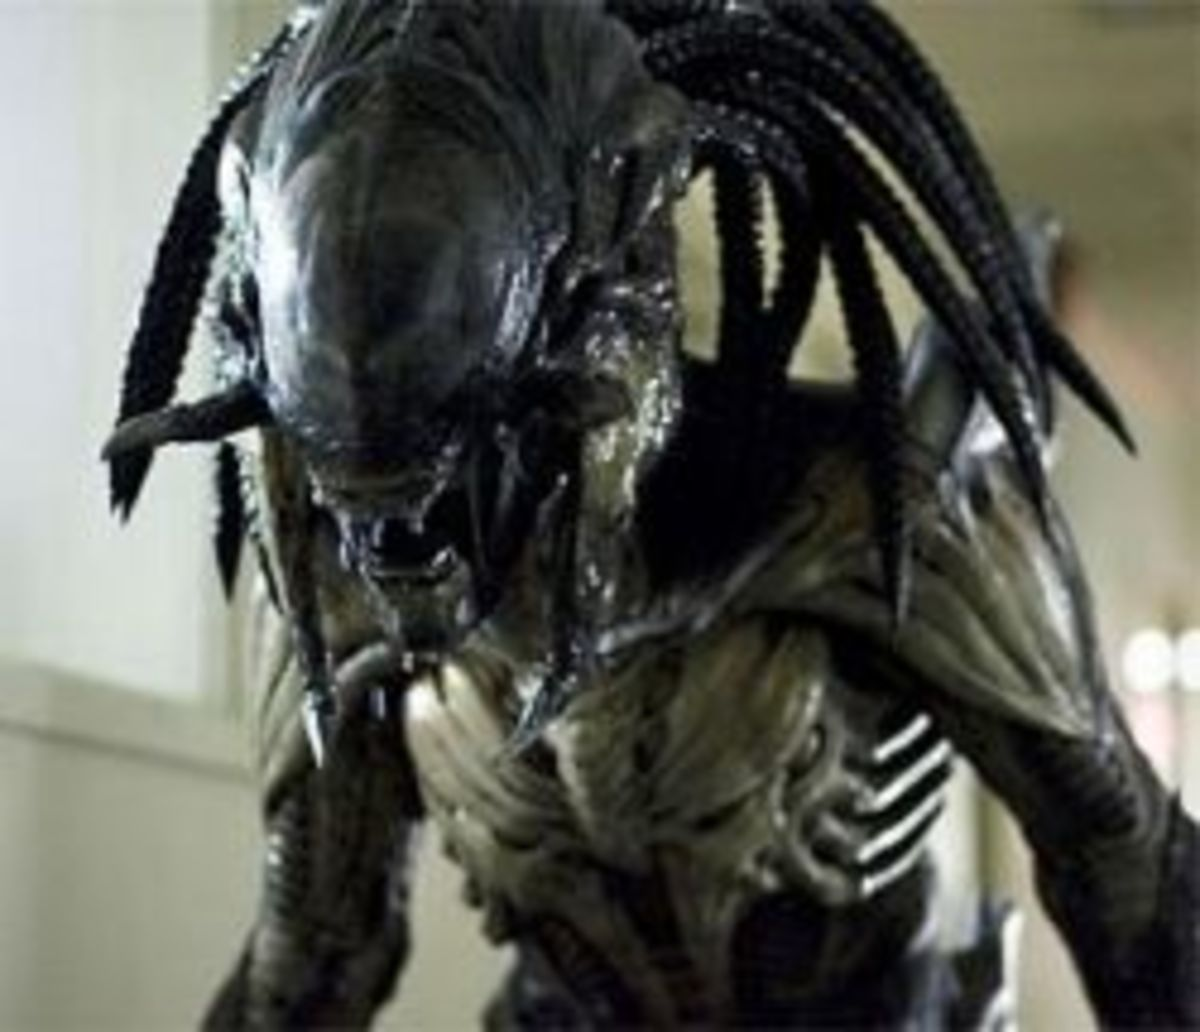 Predalien (Alien and Predator hybrid)